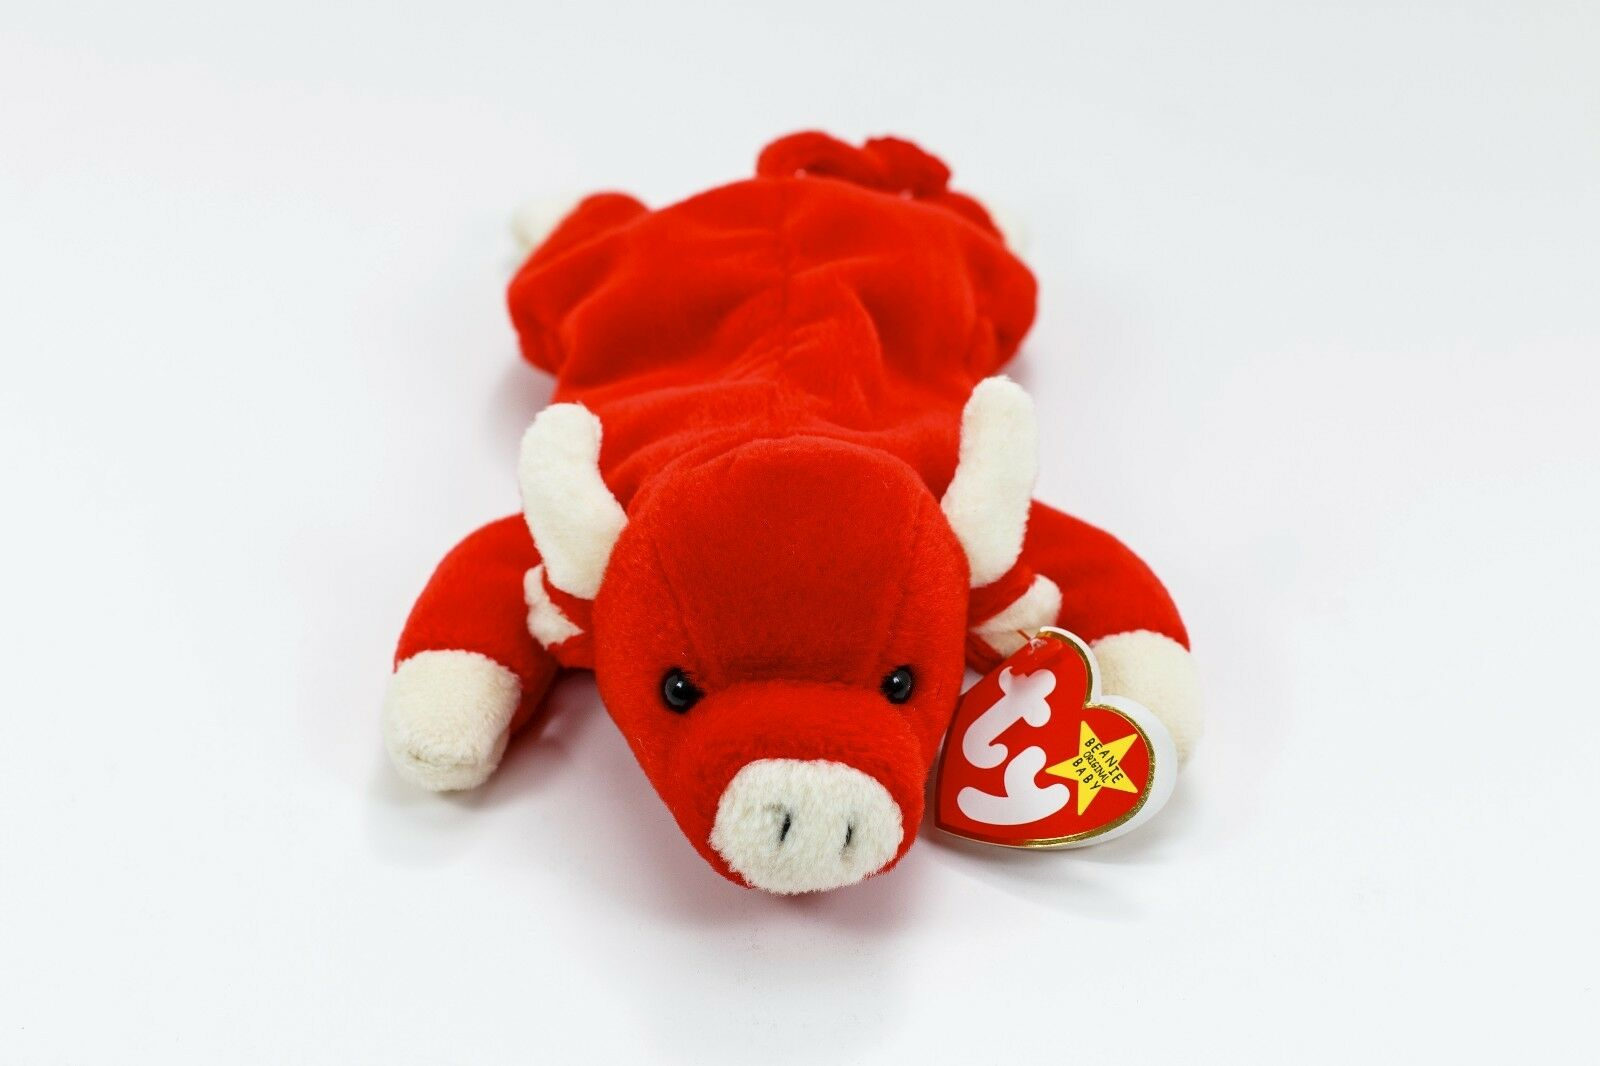 TY Beanie Baby Snort The Bull, 1995 Retired, Rare Tag Errors, Mint Condition